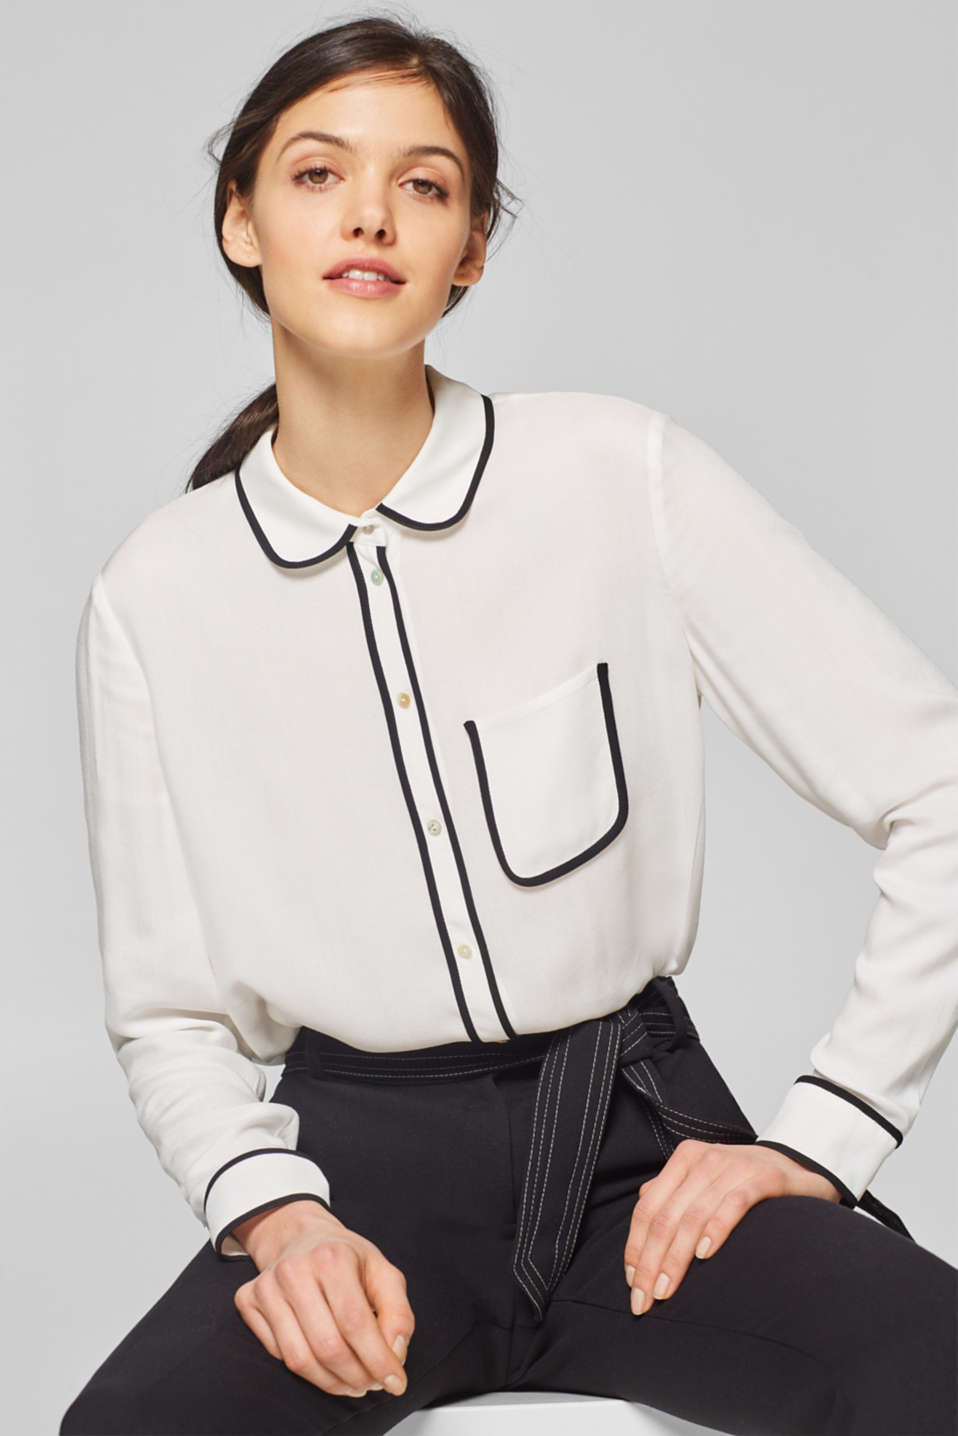 339e871a1dd17 Esprit - Blouse with a Peter Pan collar and contrasting piping at ...